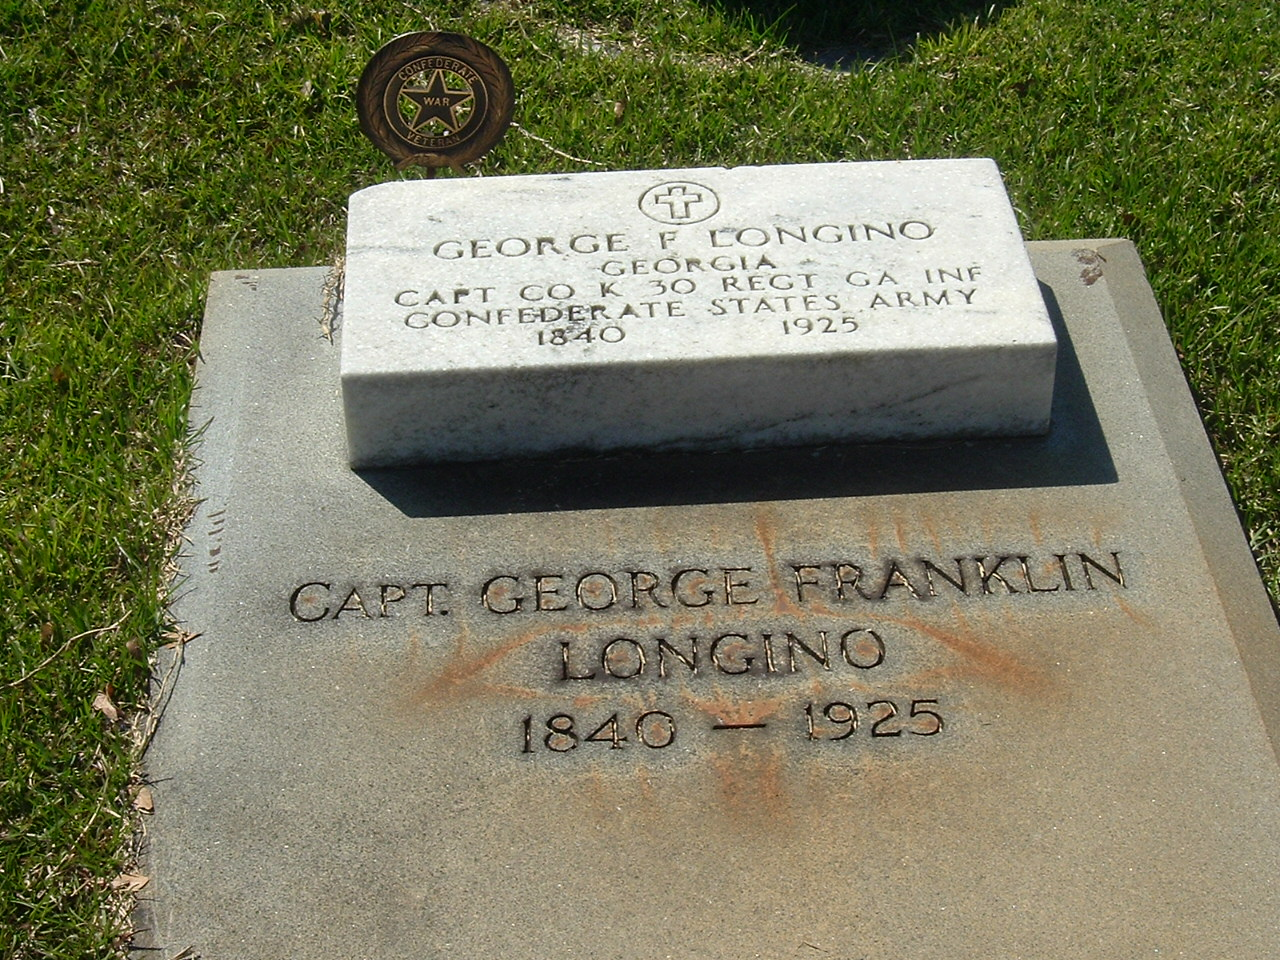 Capt George Franklin Longino